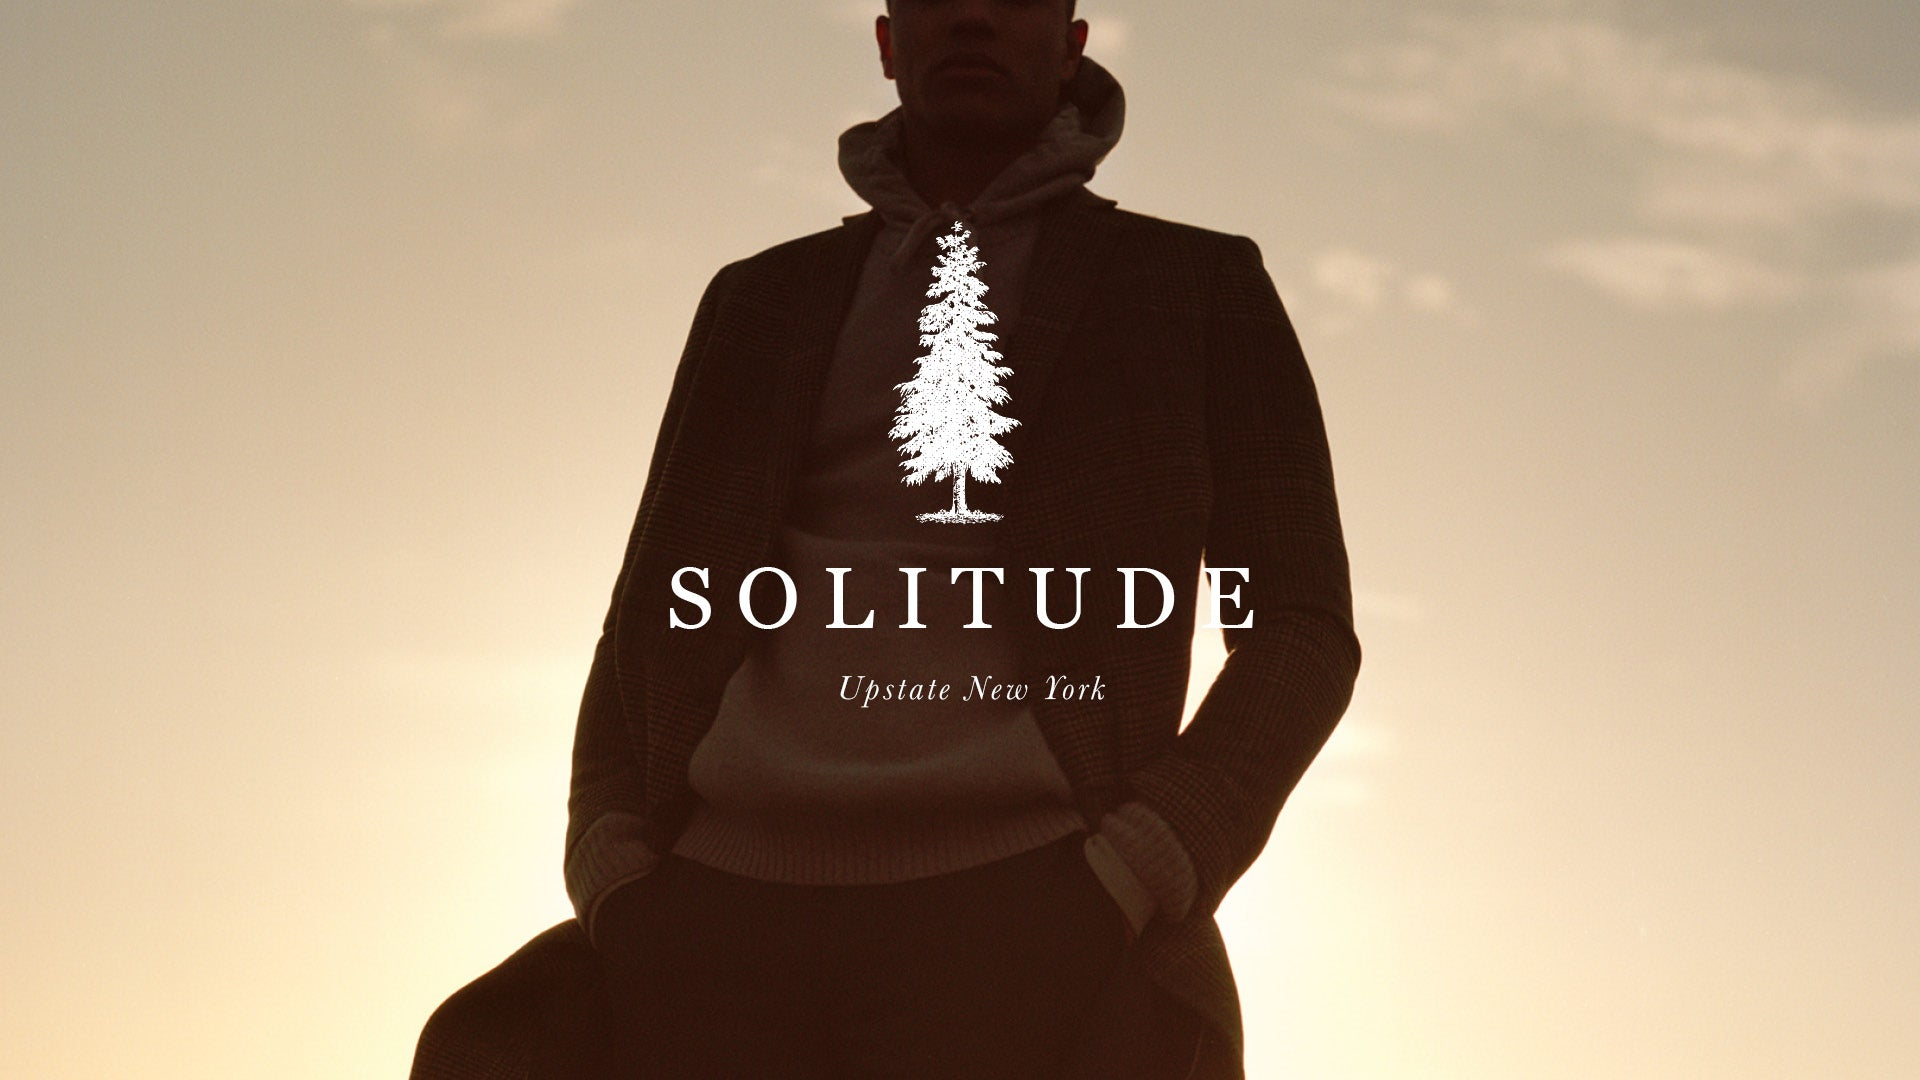 Solitude, Upstate New York - Pre-spring 21 Campaign